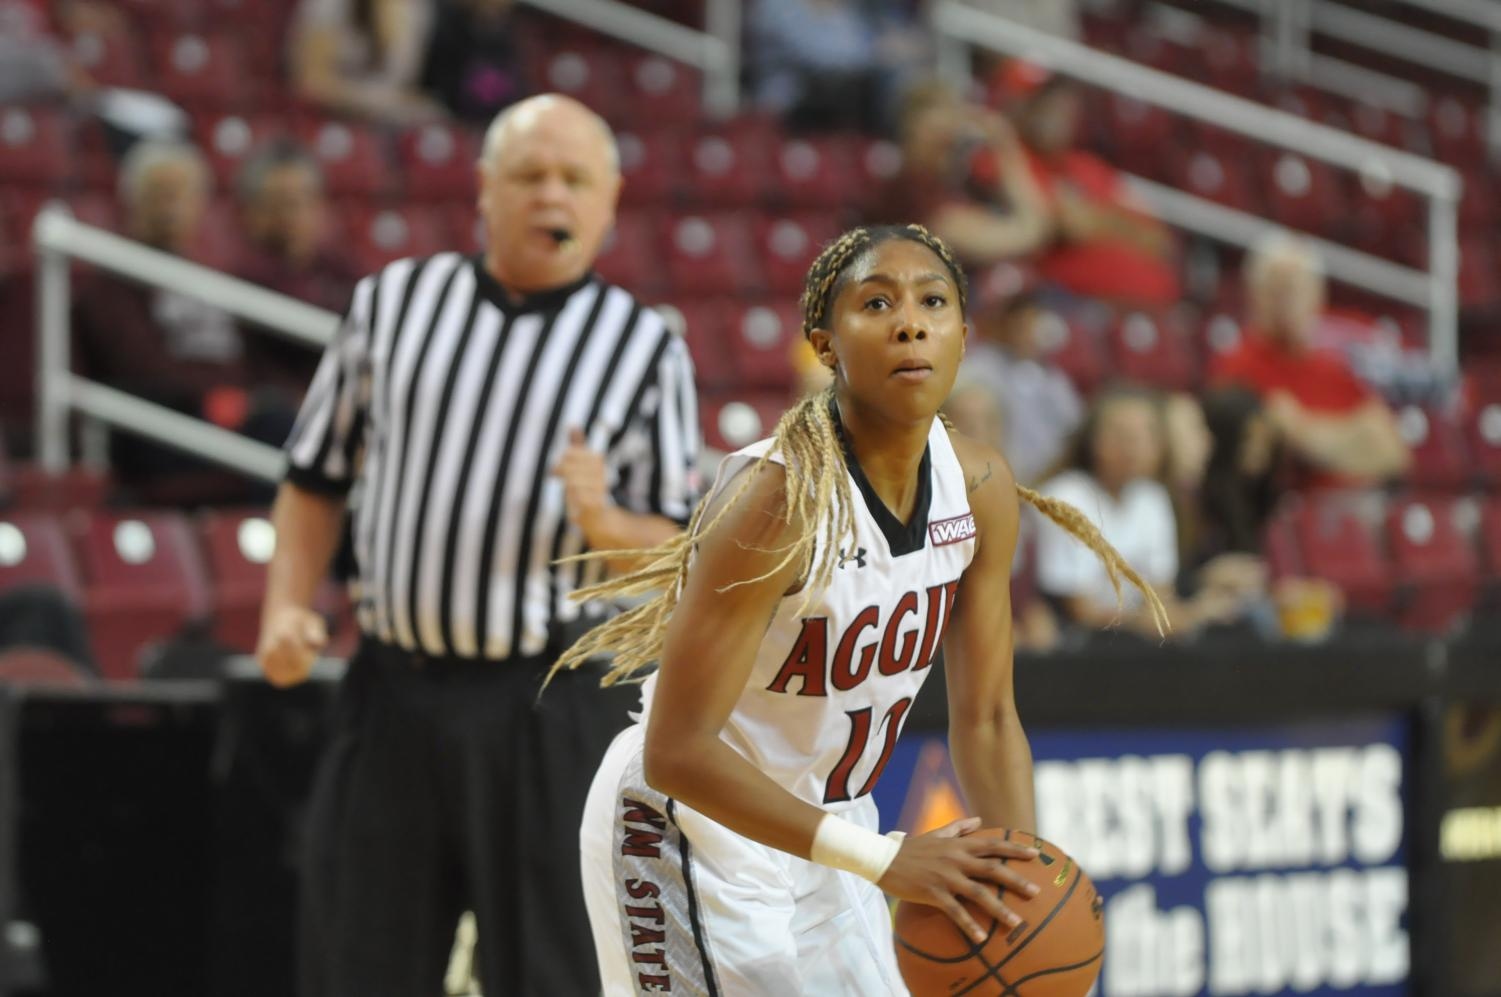 Zaire+Williams+and+the+Aggies+win+their+third+game+in+a+row+and+continue+a+hot+start+in+conference+play.